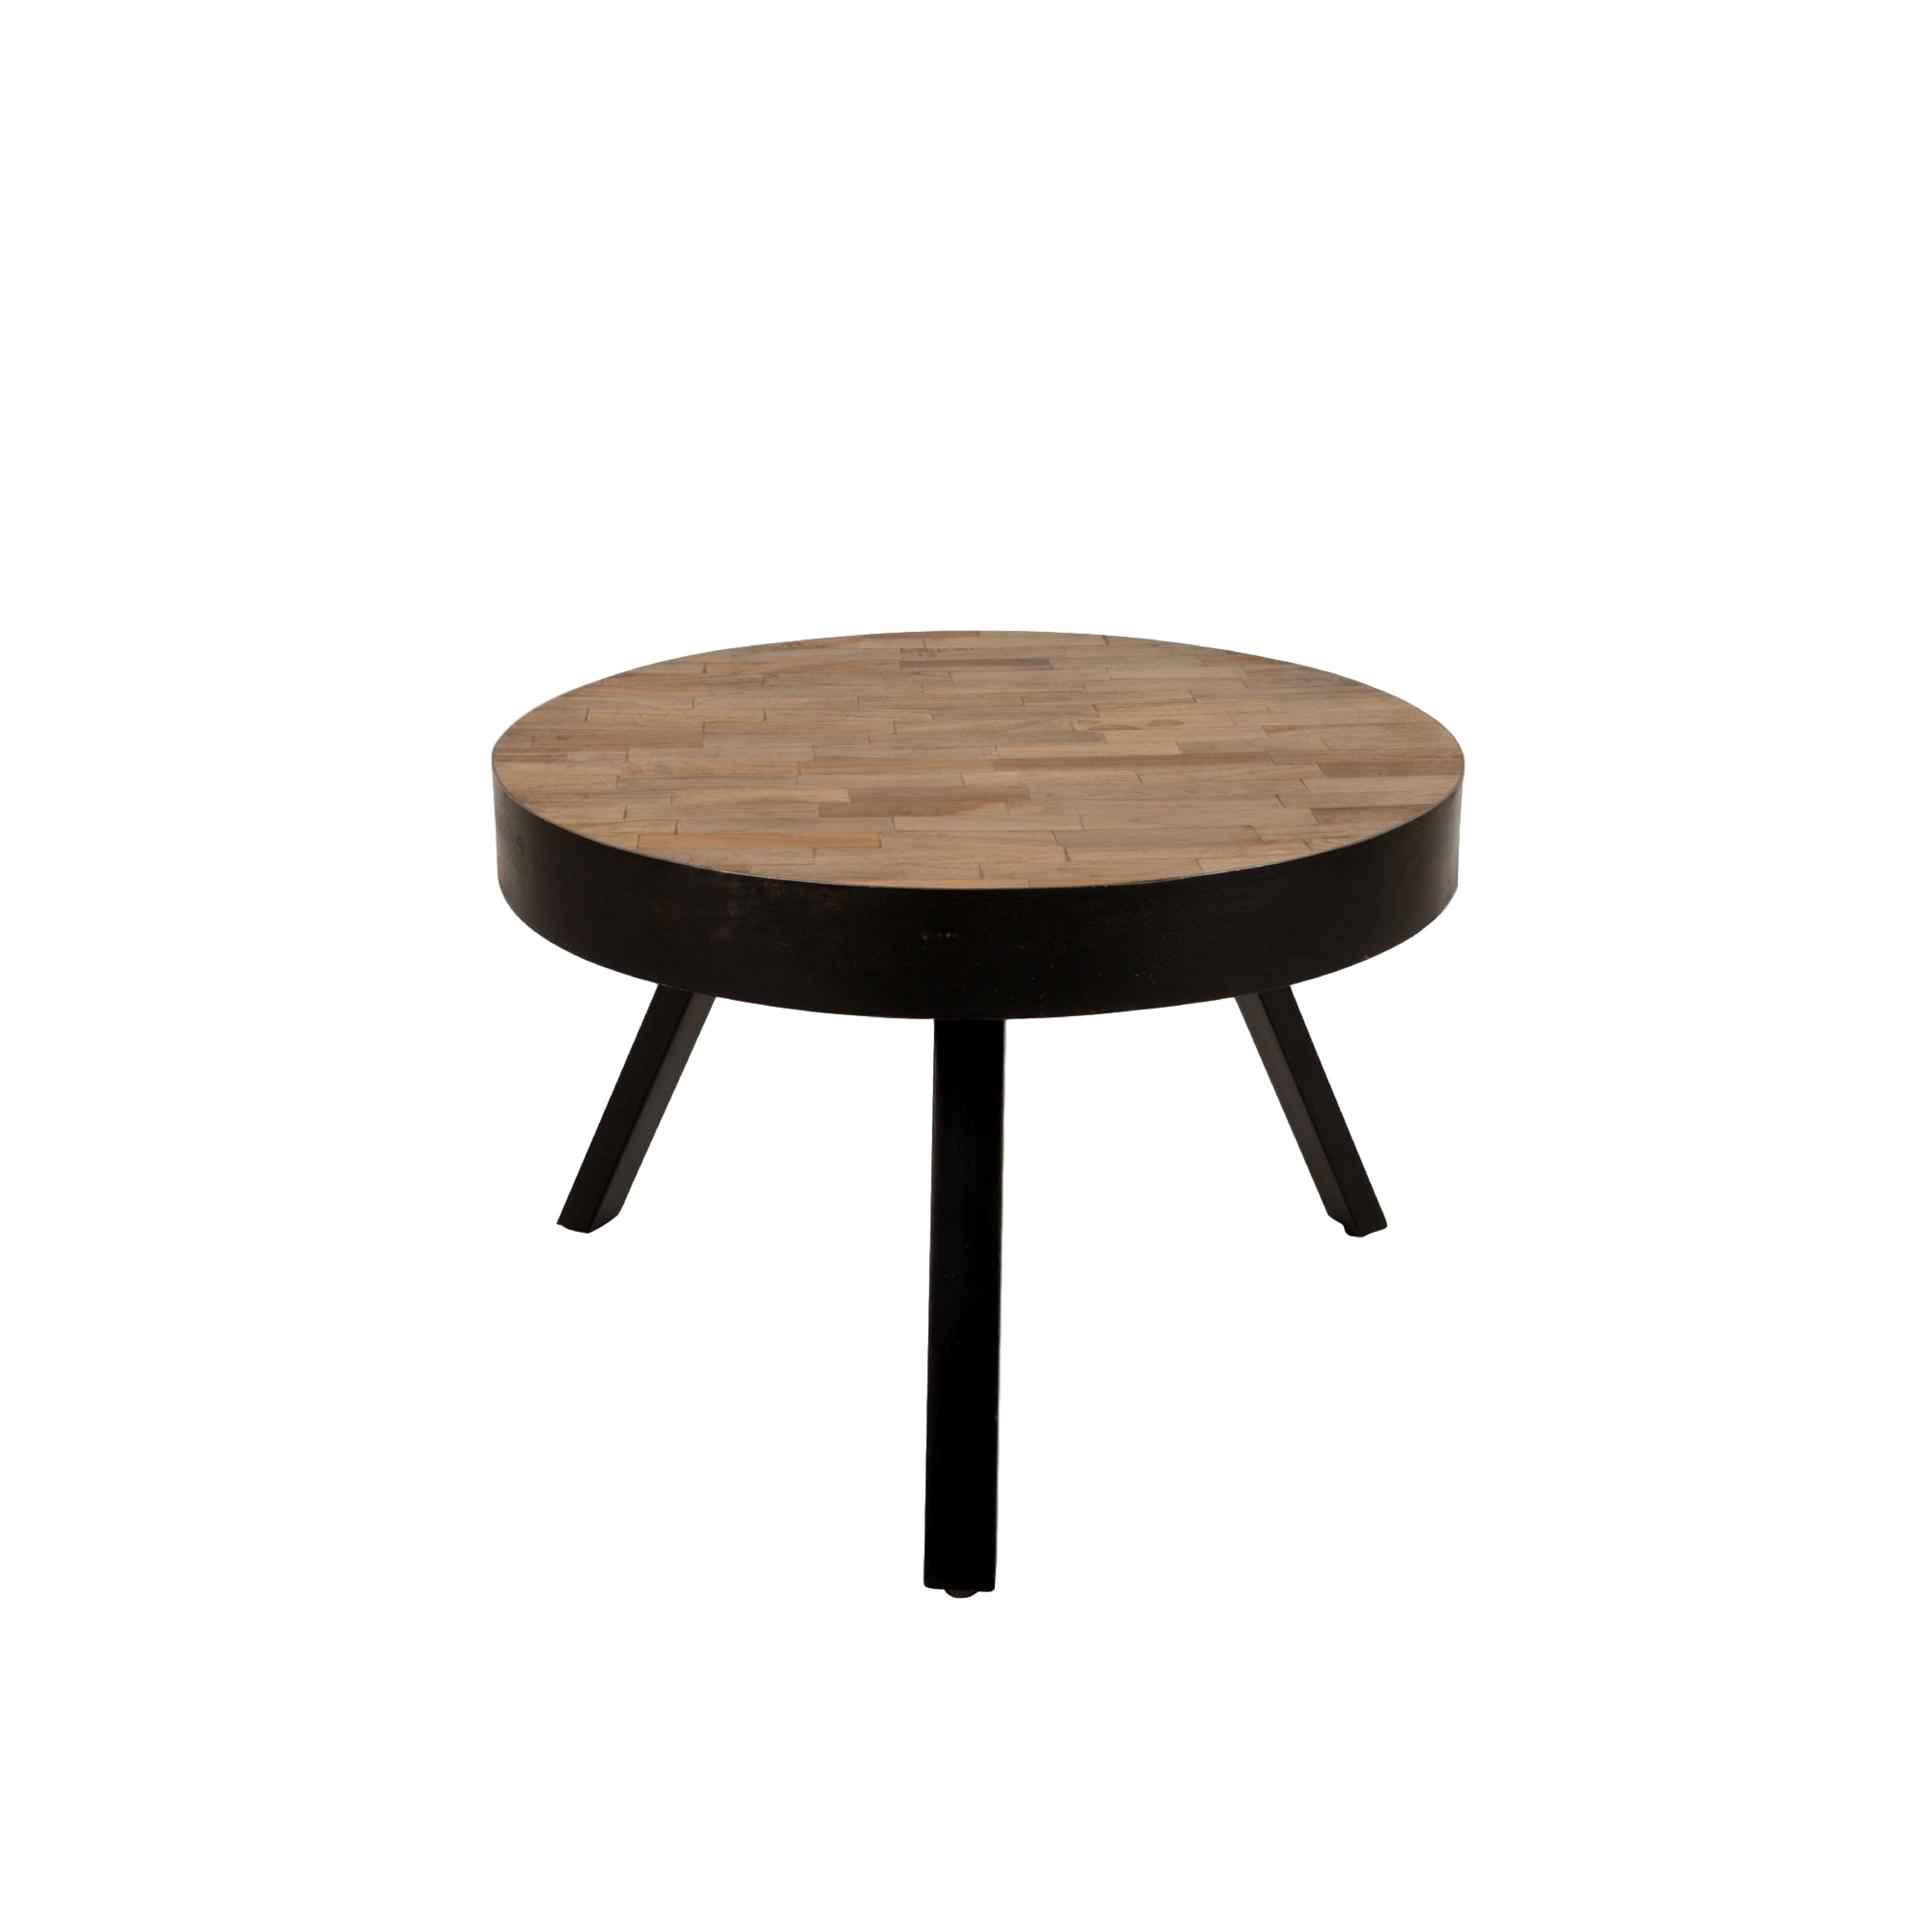 TABLE BASSE EN TECK & MÉTAL 3 SUISSES COLLECTION – 159€